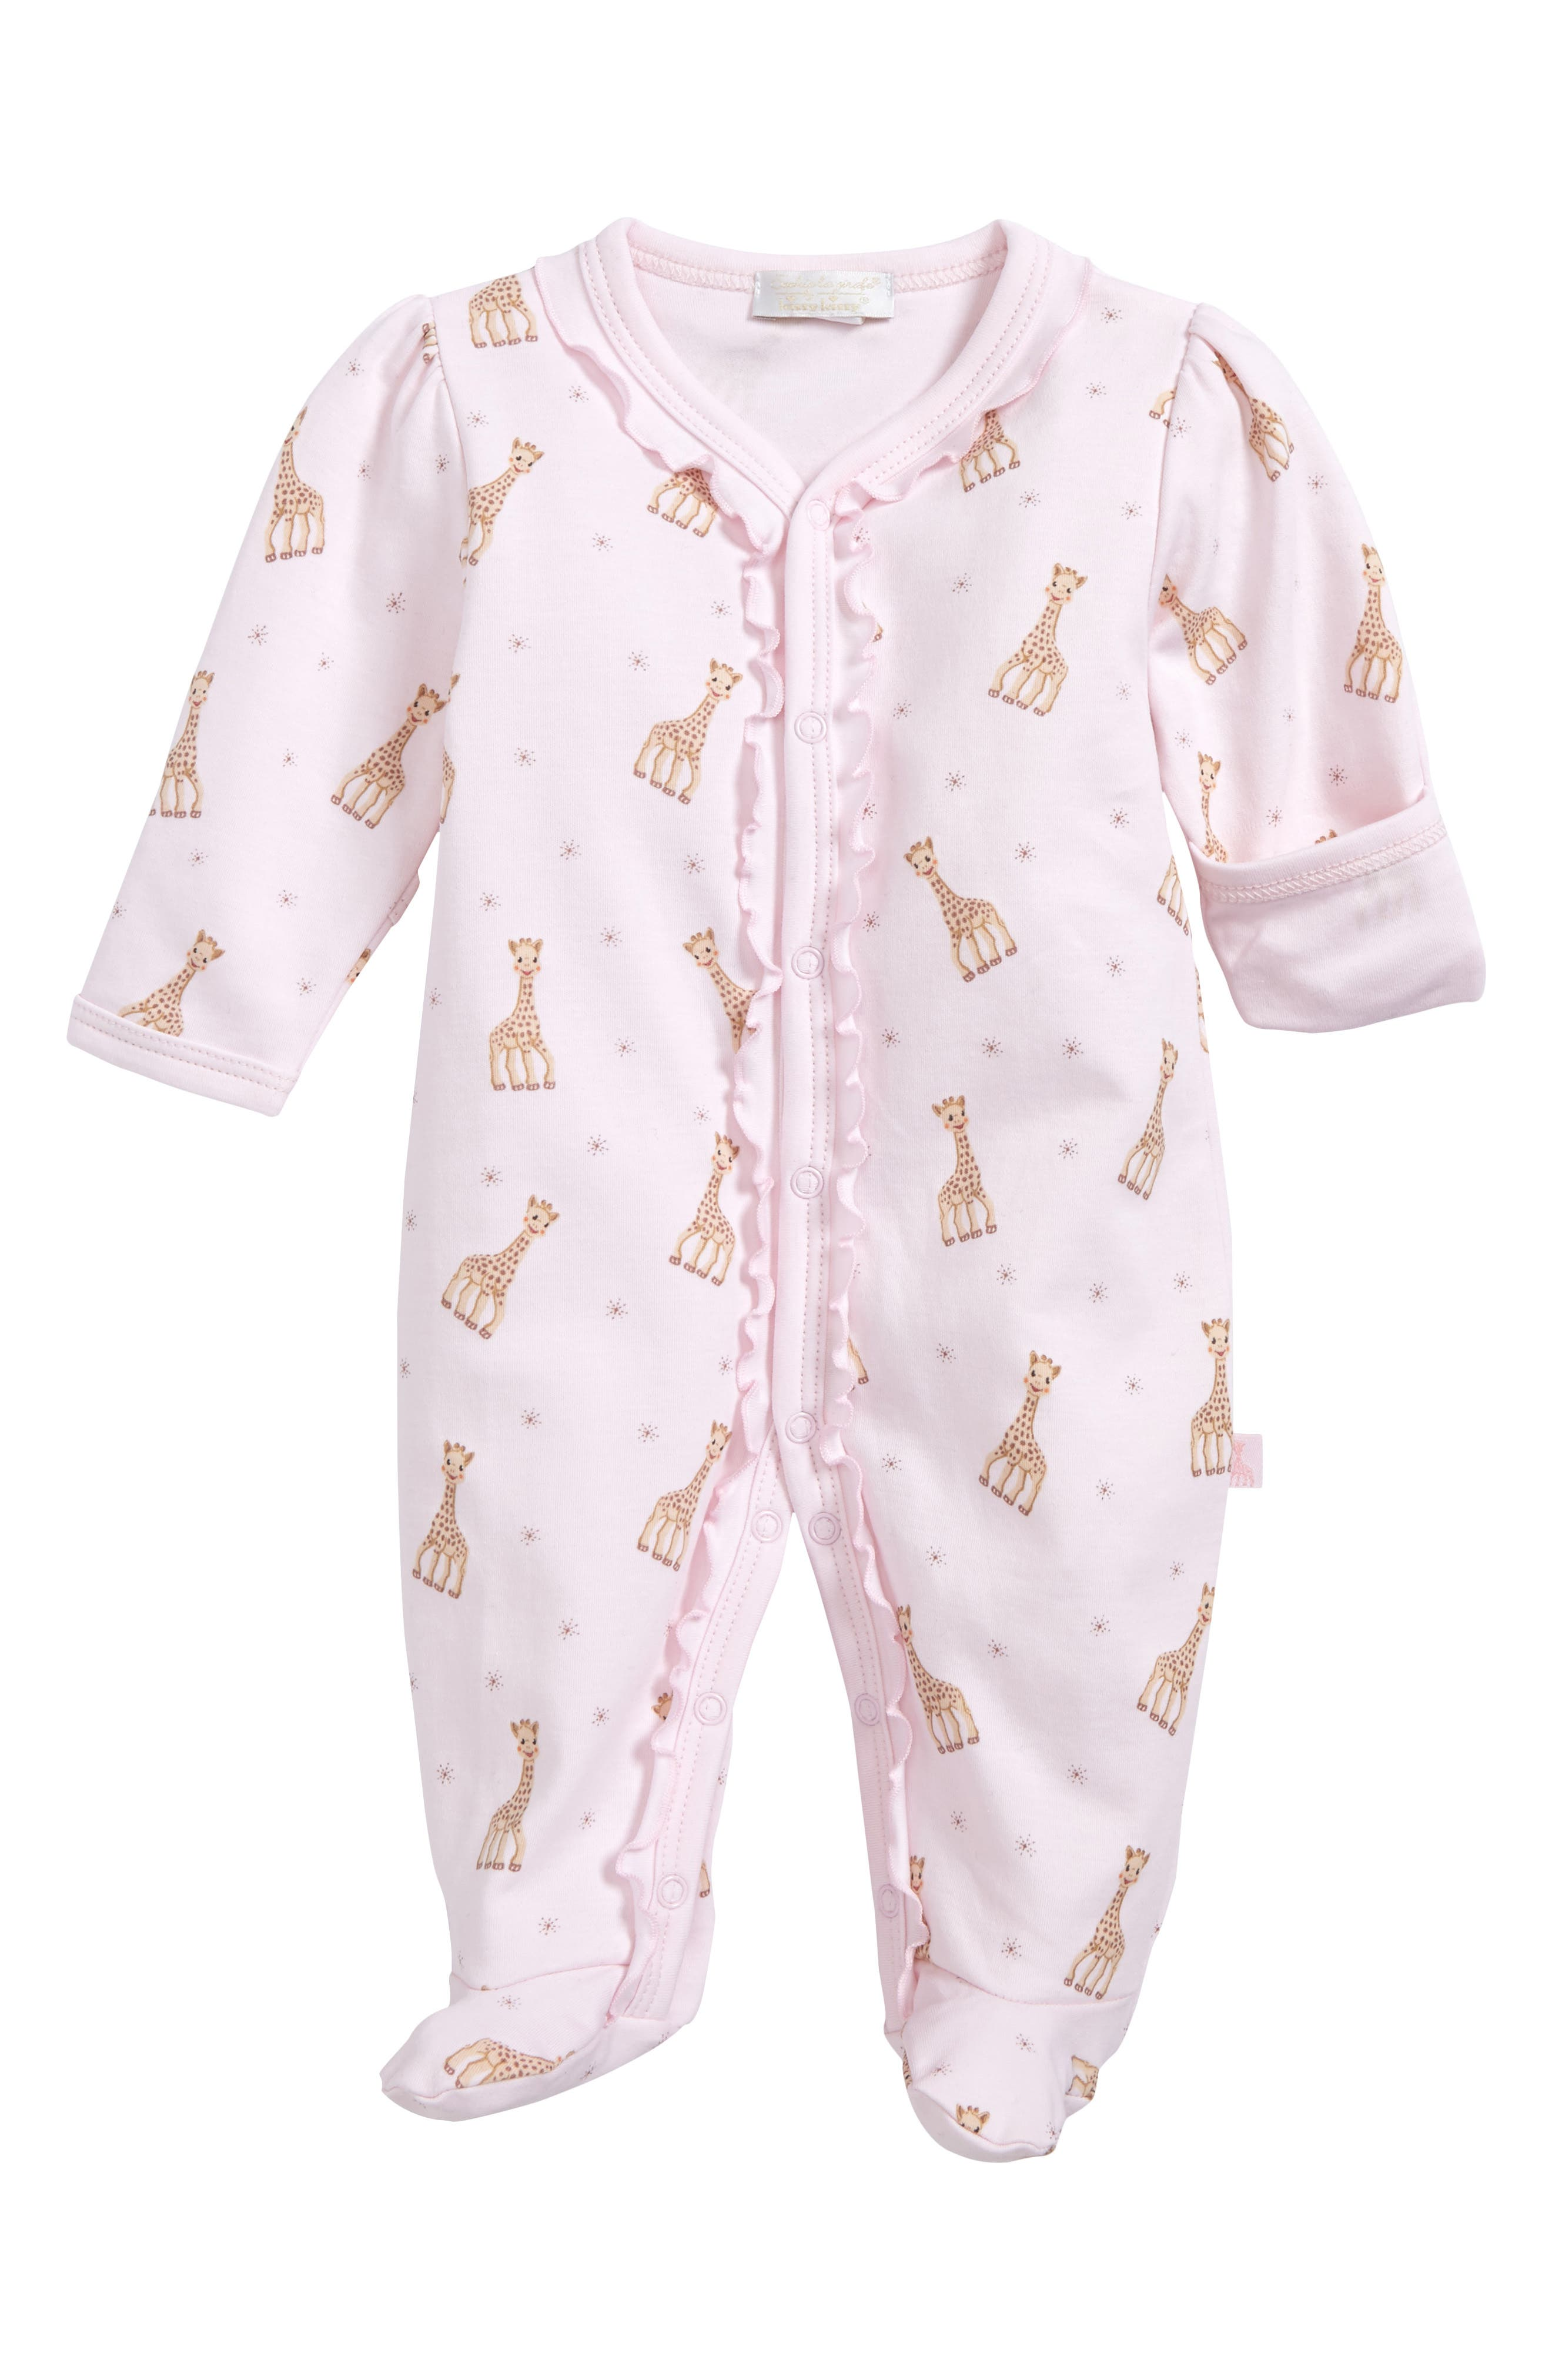 Alternate Image 1 Selected - Kissy Kissy Sophie Print Footie (Baby Girls)